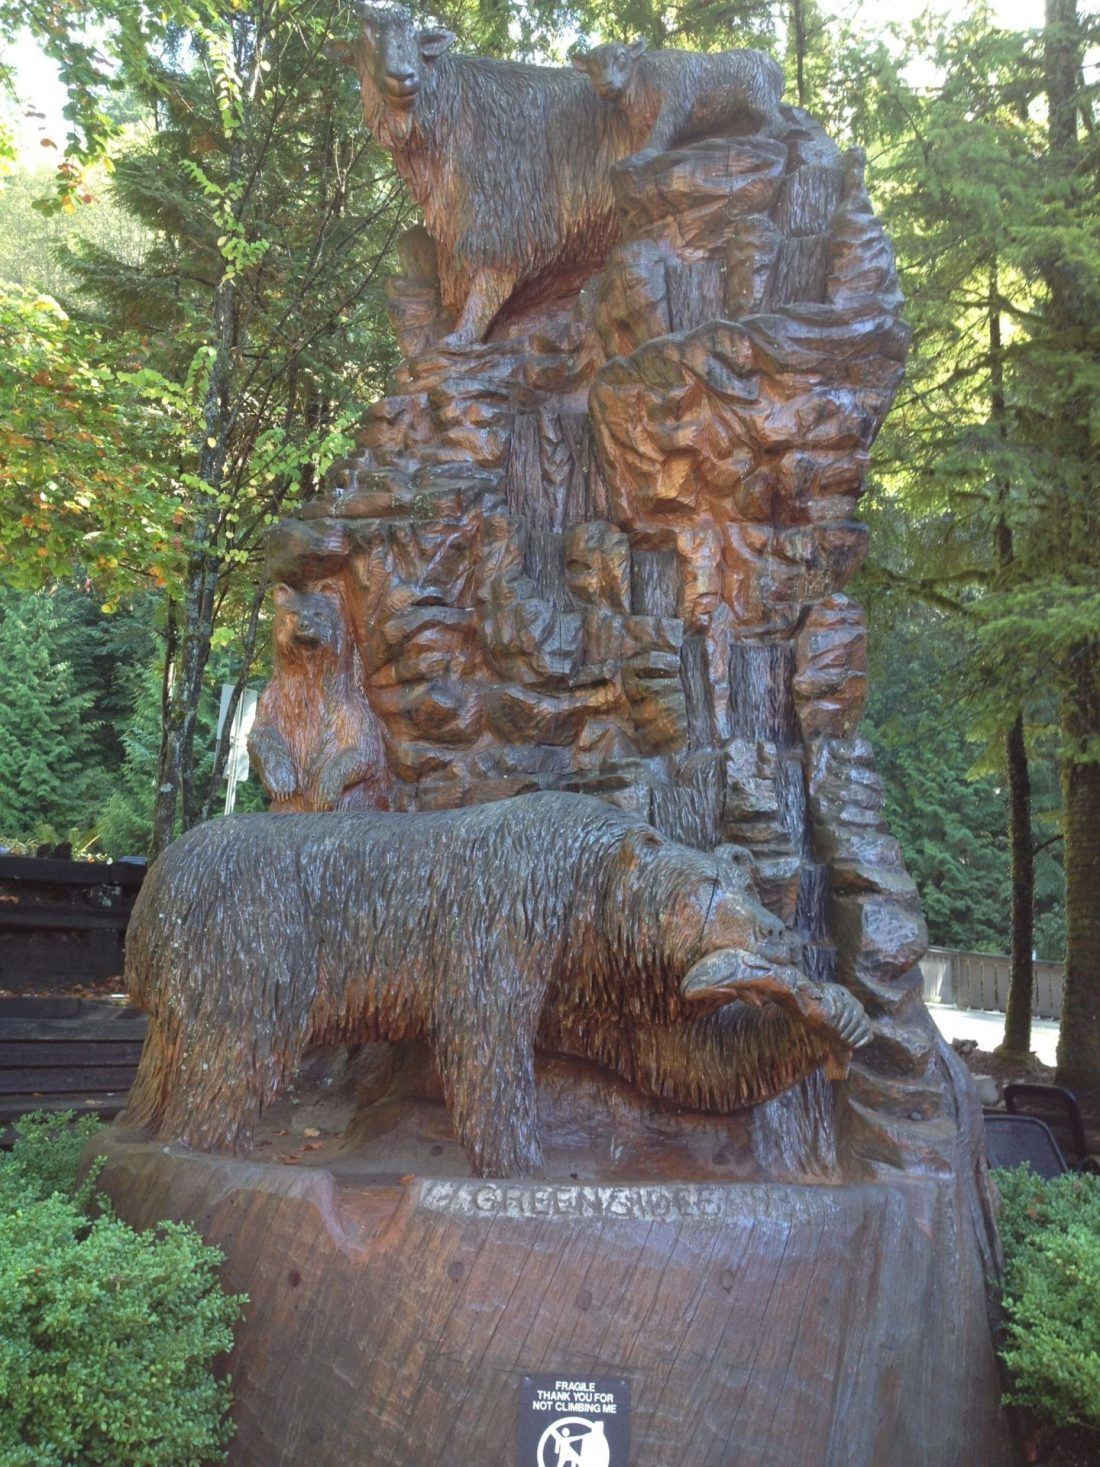 Wood carvings at the start of the Grouse Grind, Vancouver